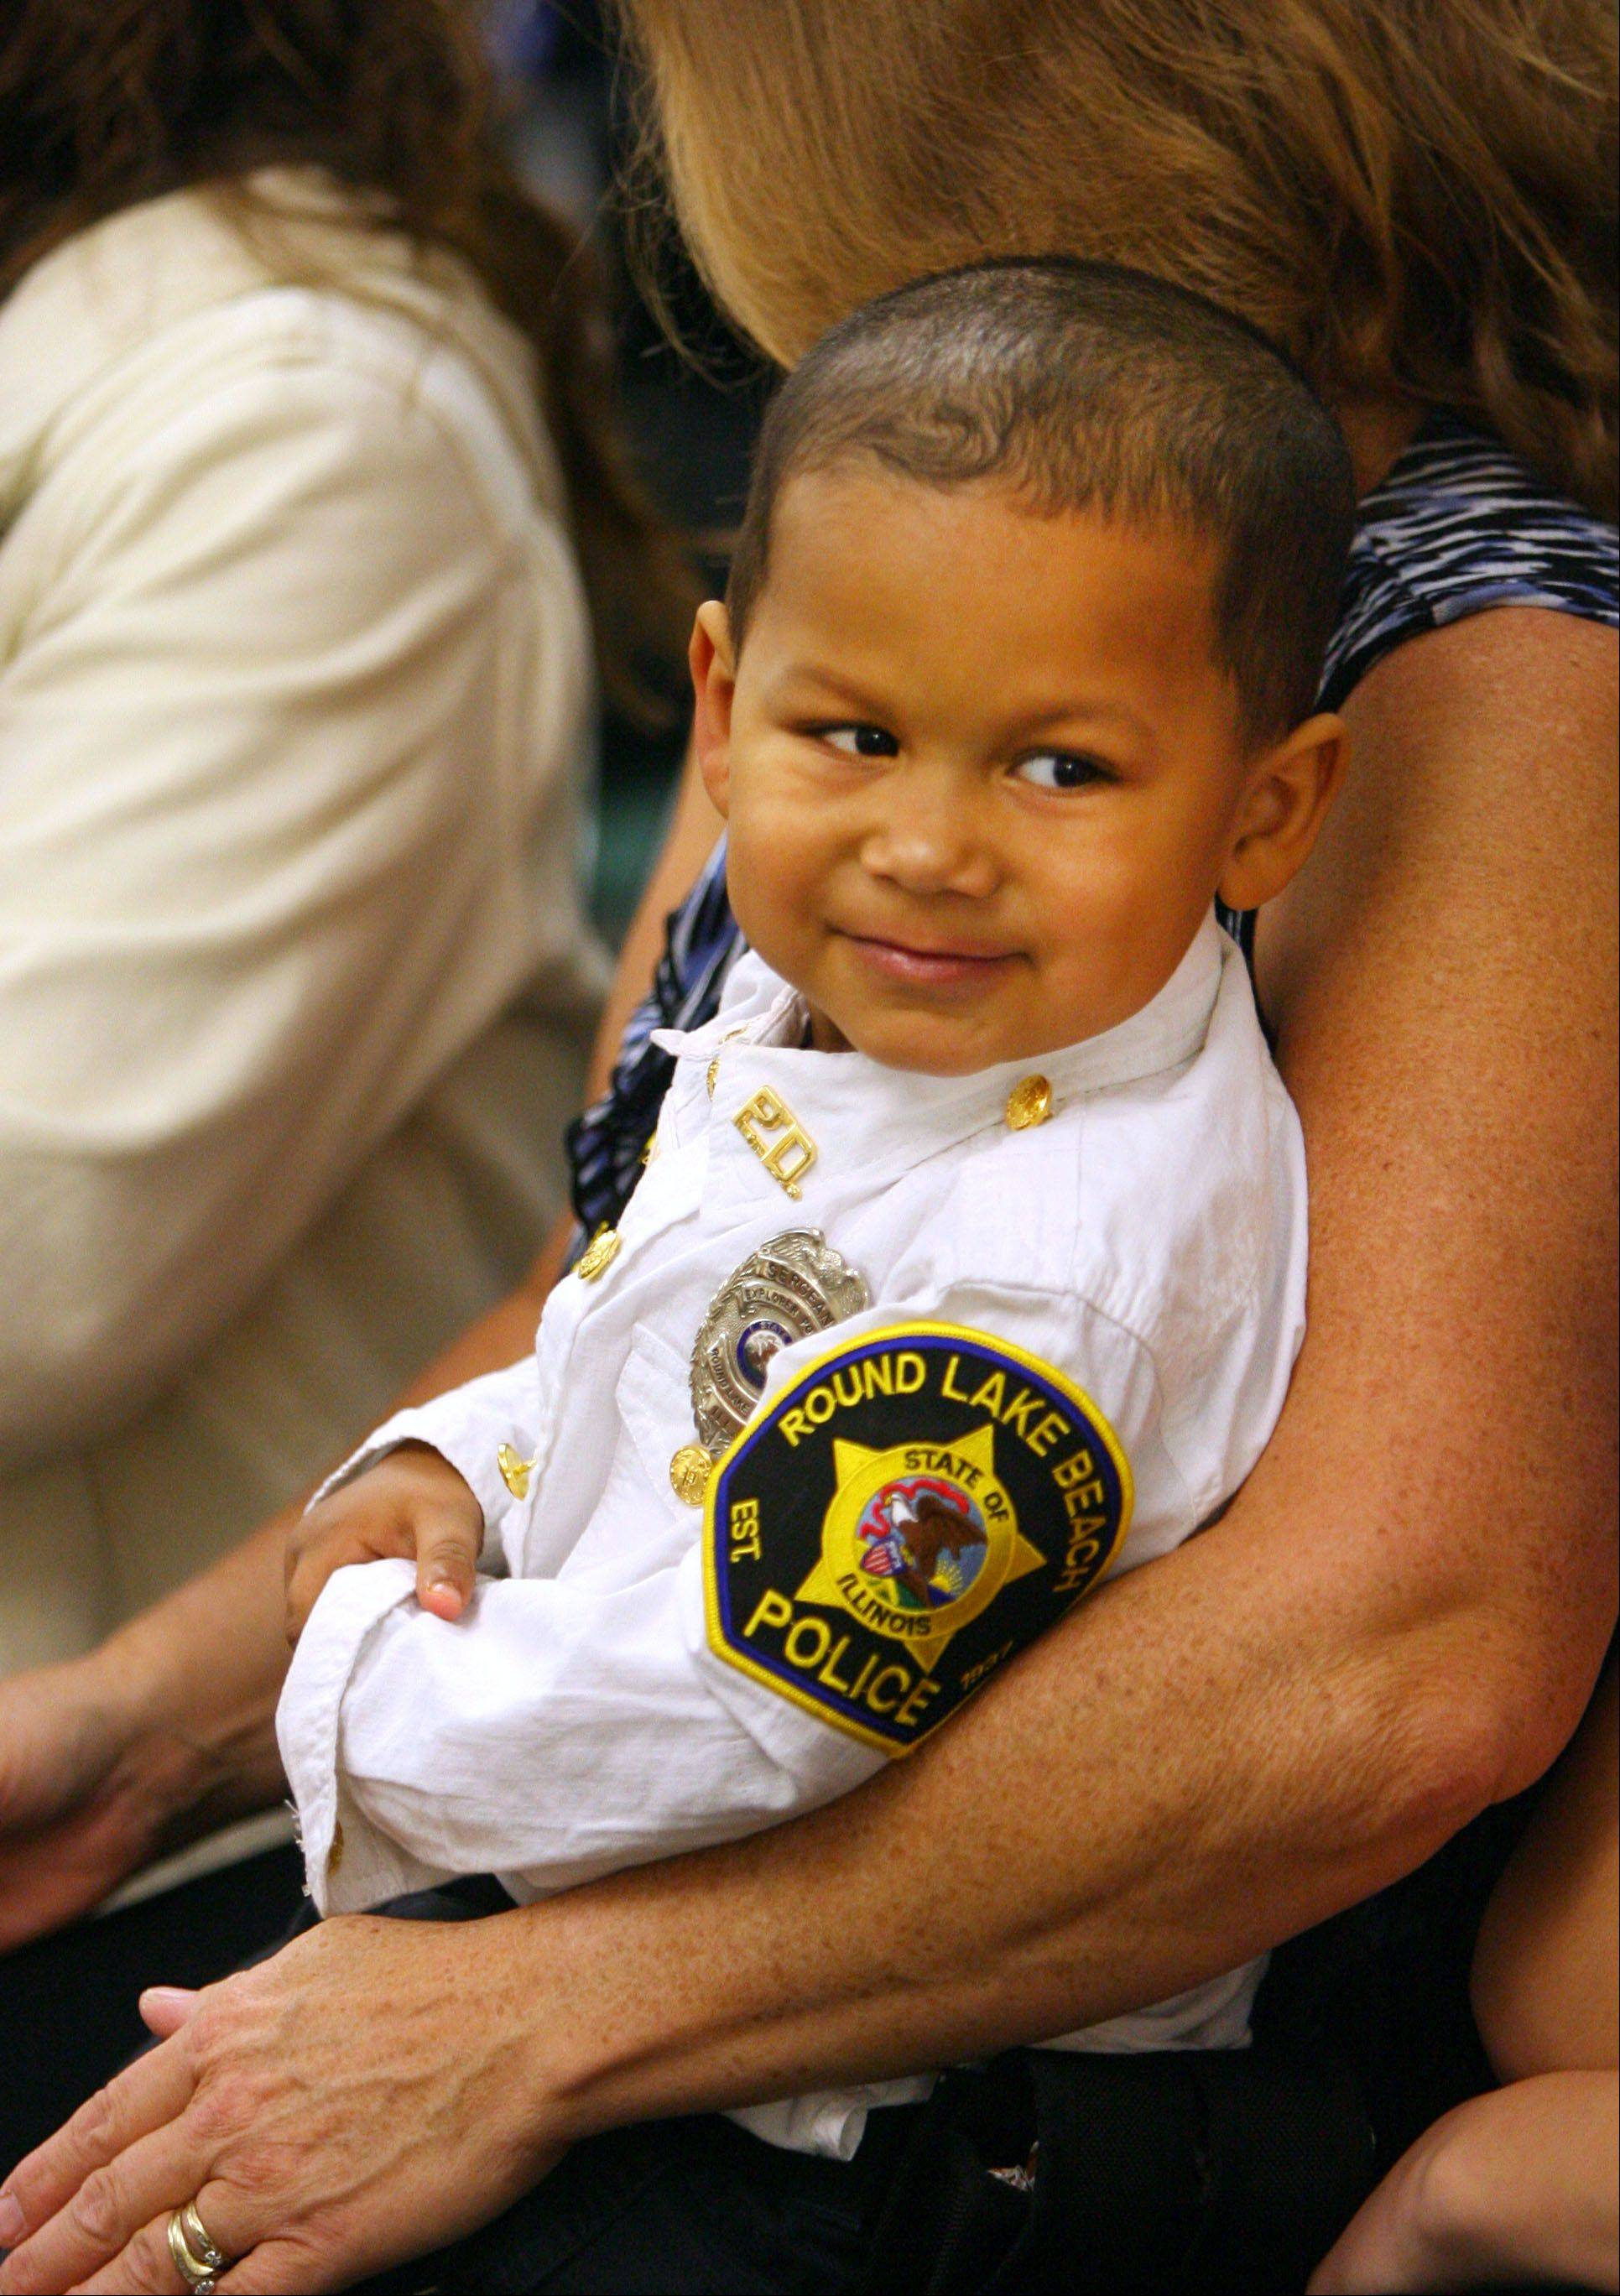 Mekhi Carter was all smiles after being recognized as a Junior Round Lake Beach Police Officer. The 3�-year-old was born with a heart condition and has had three open-heart surgeries. The department gave him a custom made police uniform for Halloween and followed up with the recognition.